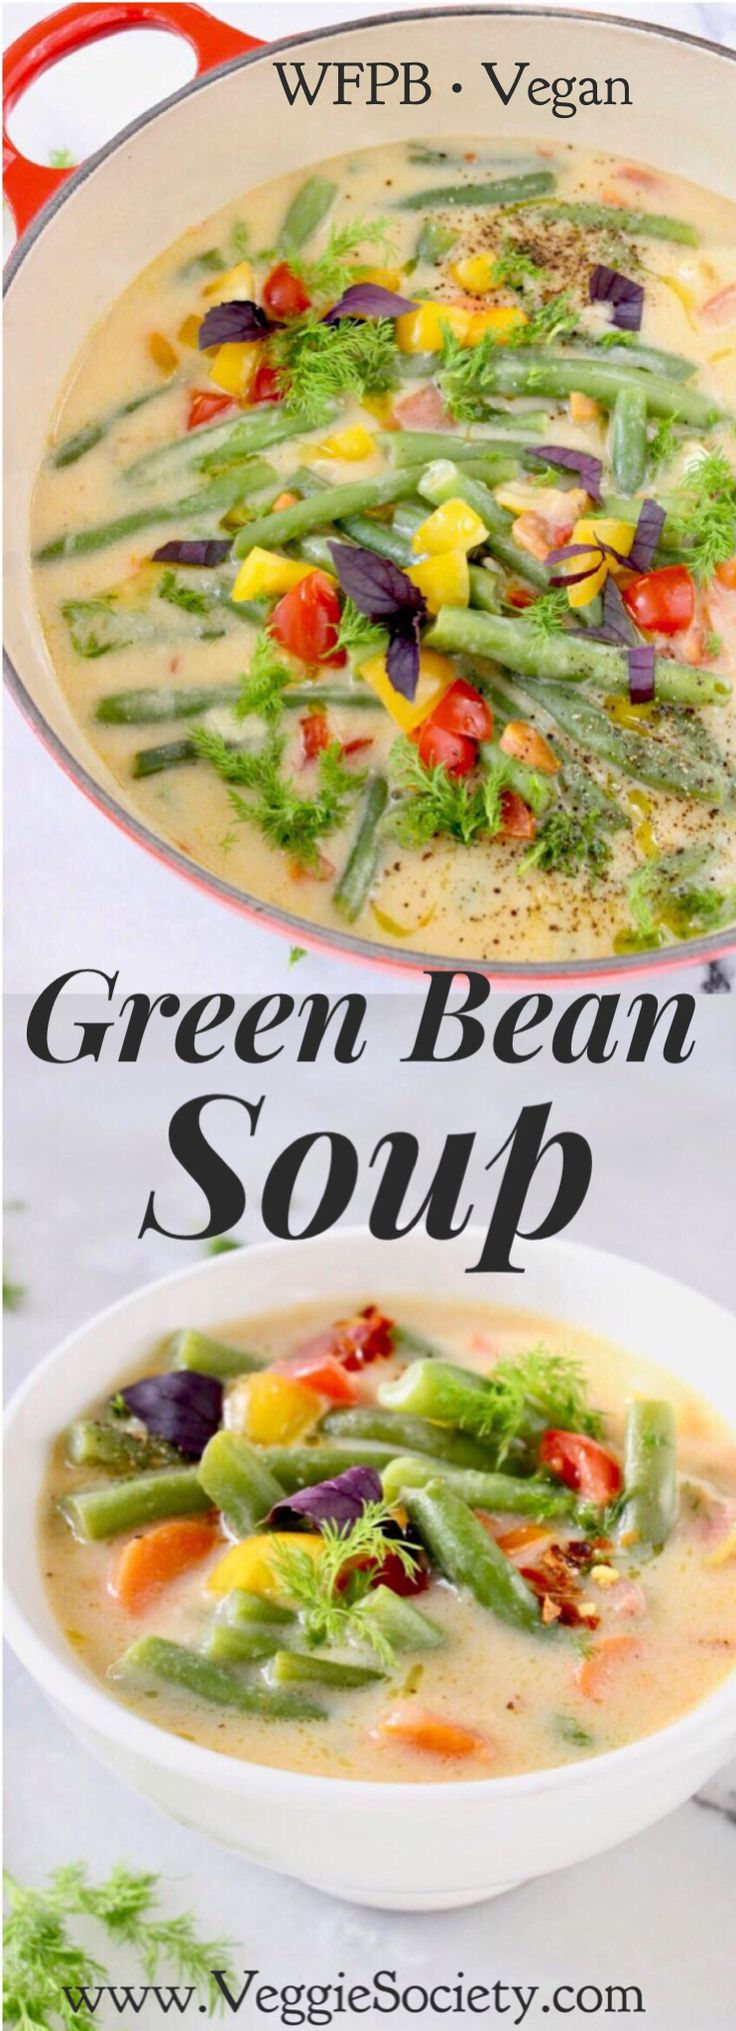 Vegan Creamy Green Bean Soup Recipe with Garlic, Carrots and Dill | VeggieSociety.com @VeggieSociety #vegan #plantbased #soup #Greenbeans